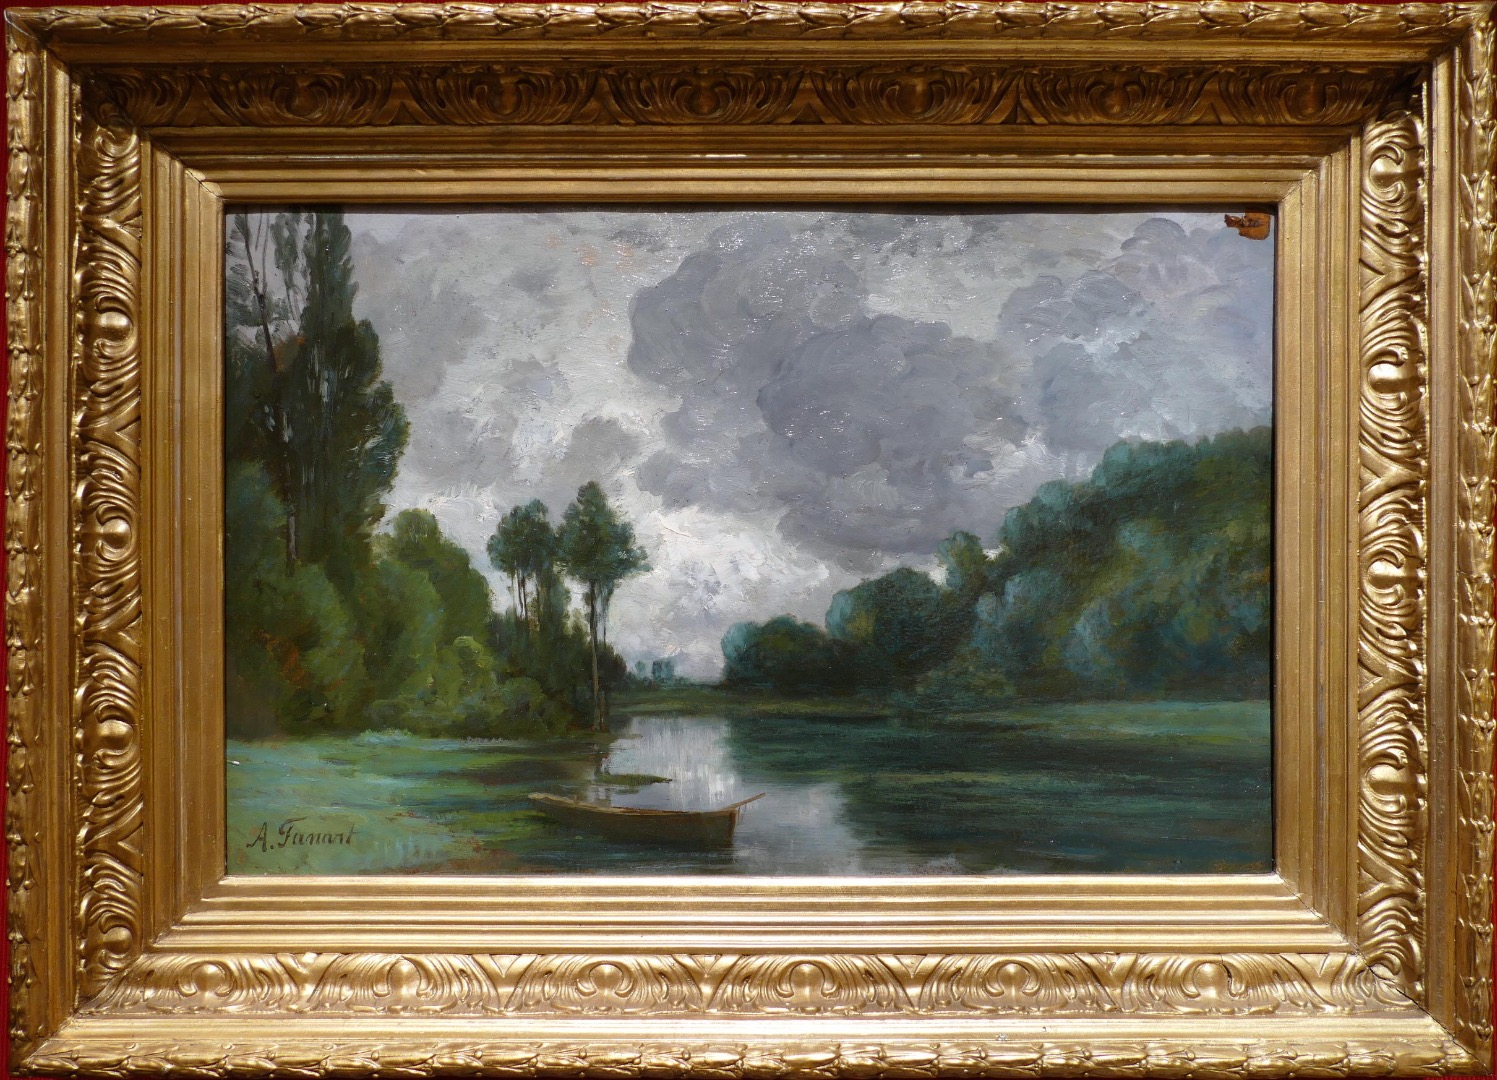 FANART Antonin French Painting XIXth Century Riverside Oil On Cardboard Signed